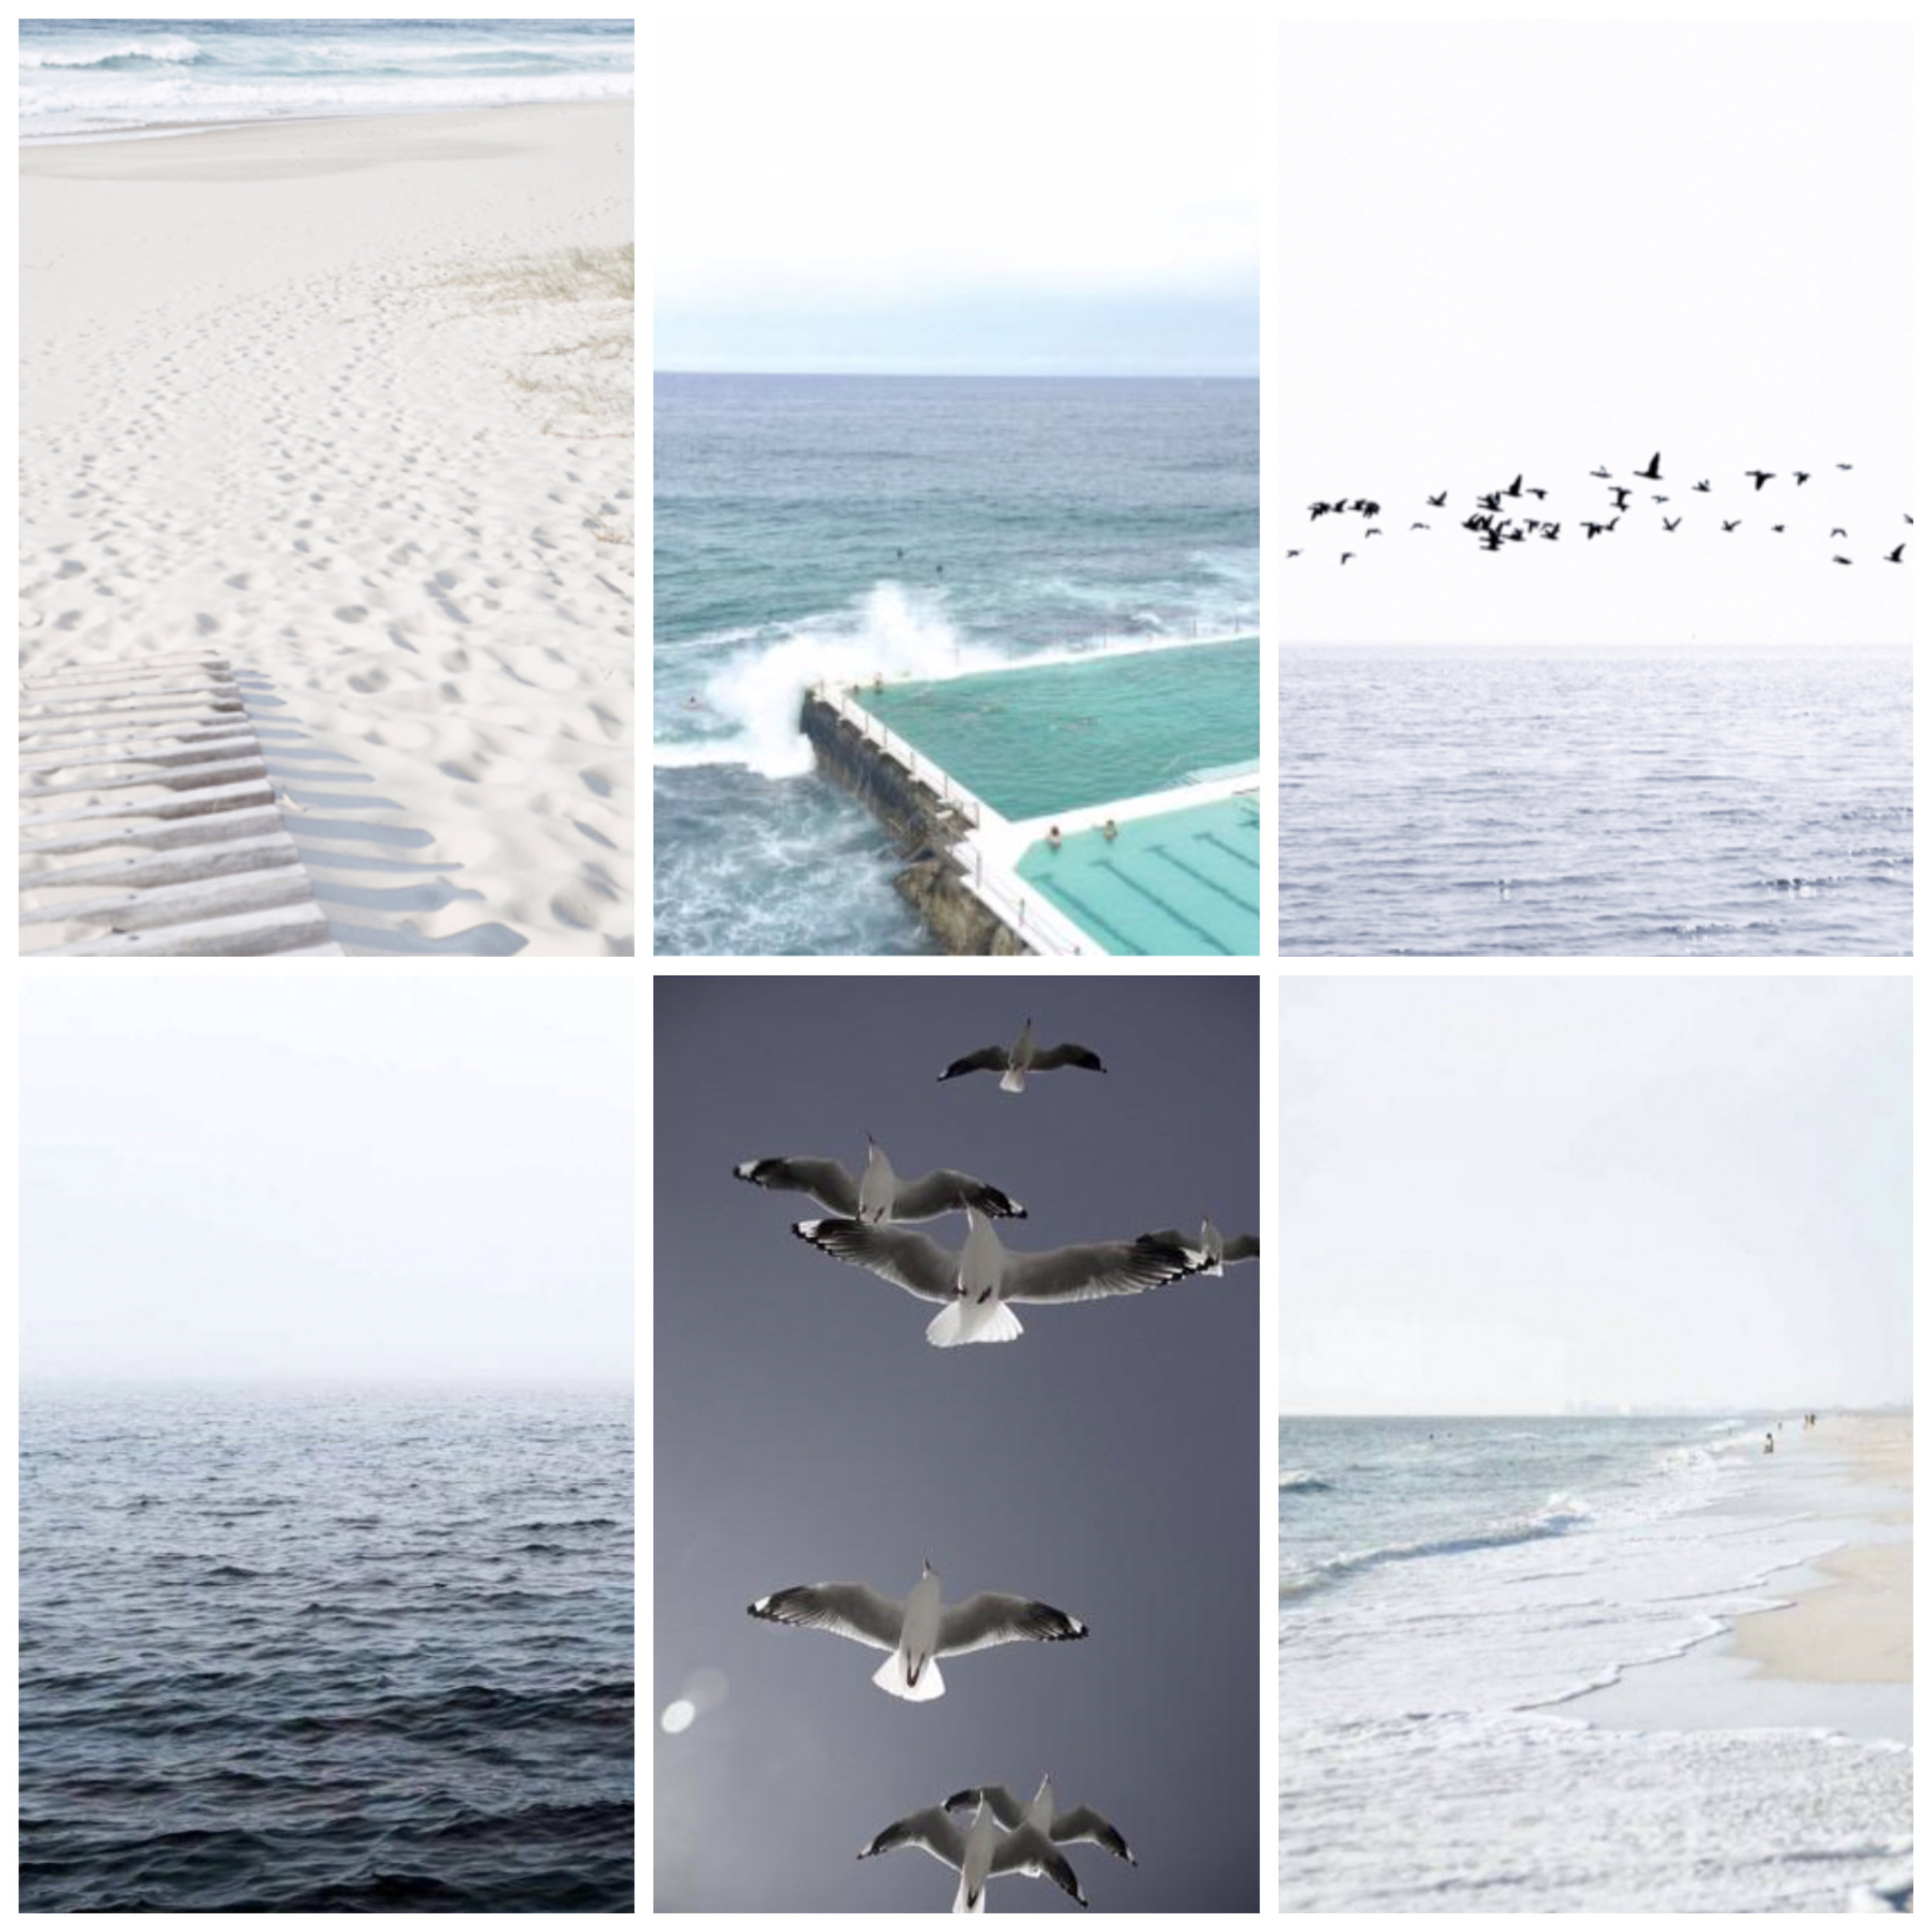 1. AN AFTERNOON BY THE SEA - https://www.oliveetoriel.com/collections/photographic/products/an-afternoon-by-the-sea   2. BONDI ICEBERGS POOL - http://www.printbot.net.au/product/bondi-icebergs-print-poster/   3. ATLANTIC PT - https://www.oliveetoriel.com/collections/photographic/products/atlantic-pt   4. OCEAN BREEZE - https://www.artandframingco.com.au/ocean-breeze.html   5. GULLS - https://lamingtonpress.com.au/collections/land-store/products/gulls?variant=35480948882   6. AWASH - https://www.artandframingco.com.au/awash.html